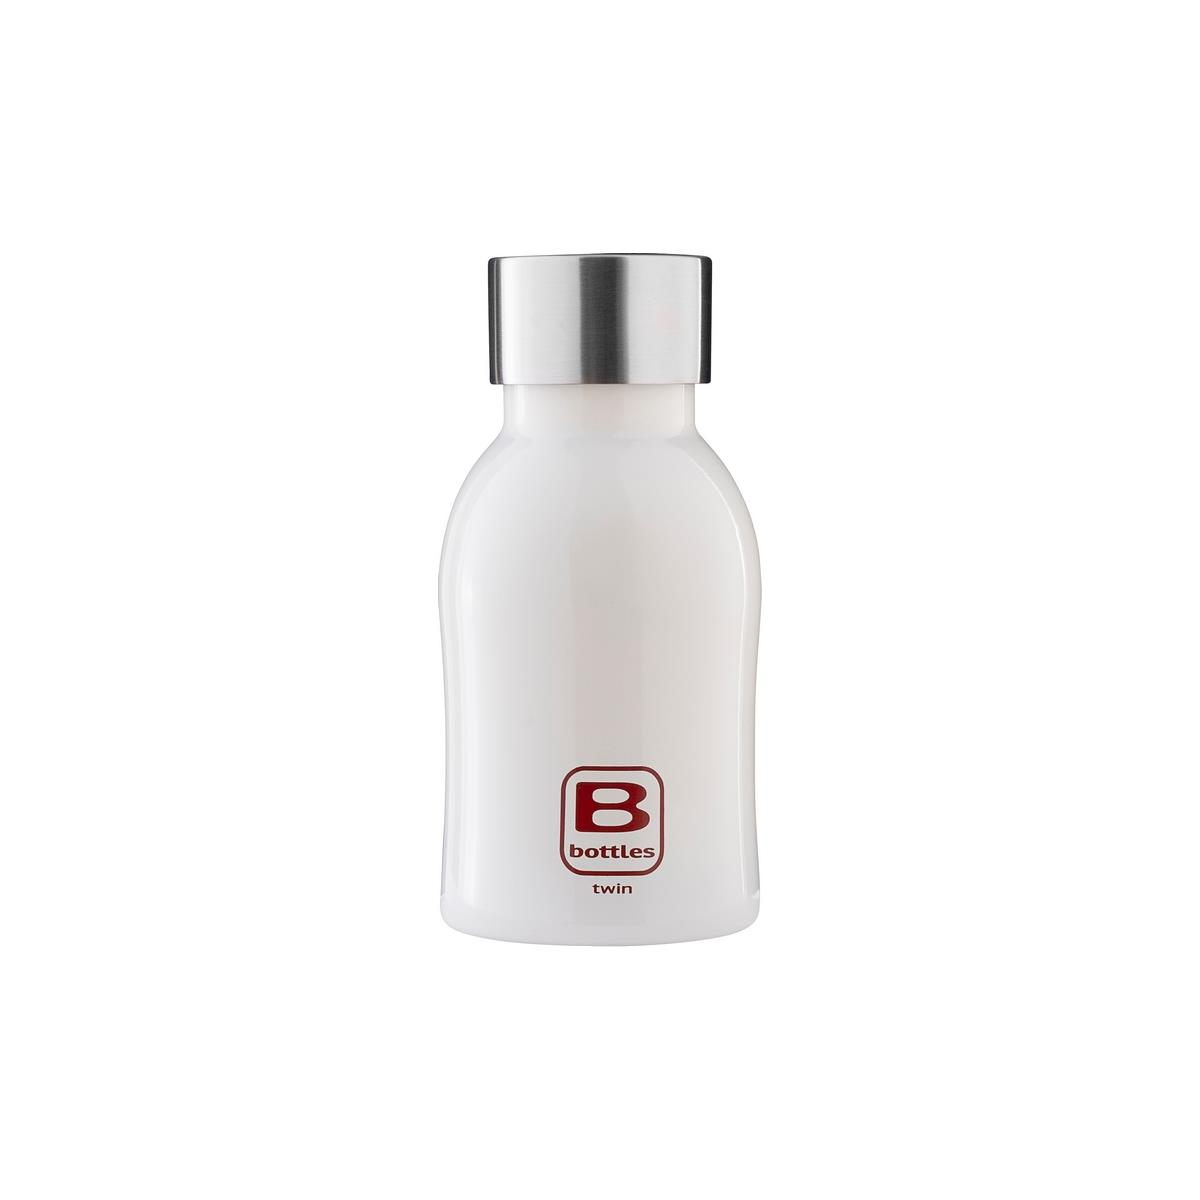 B Bottles Twin - Yellow Gold Brushed - 500 ml - Bottiglia Termica doppia parete in acc. inox 18/10